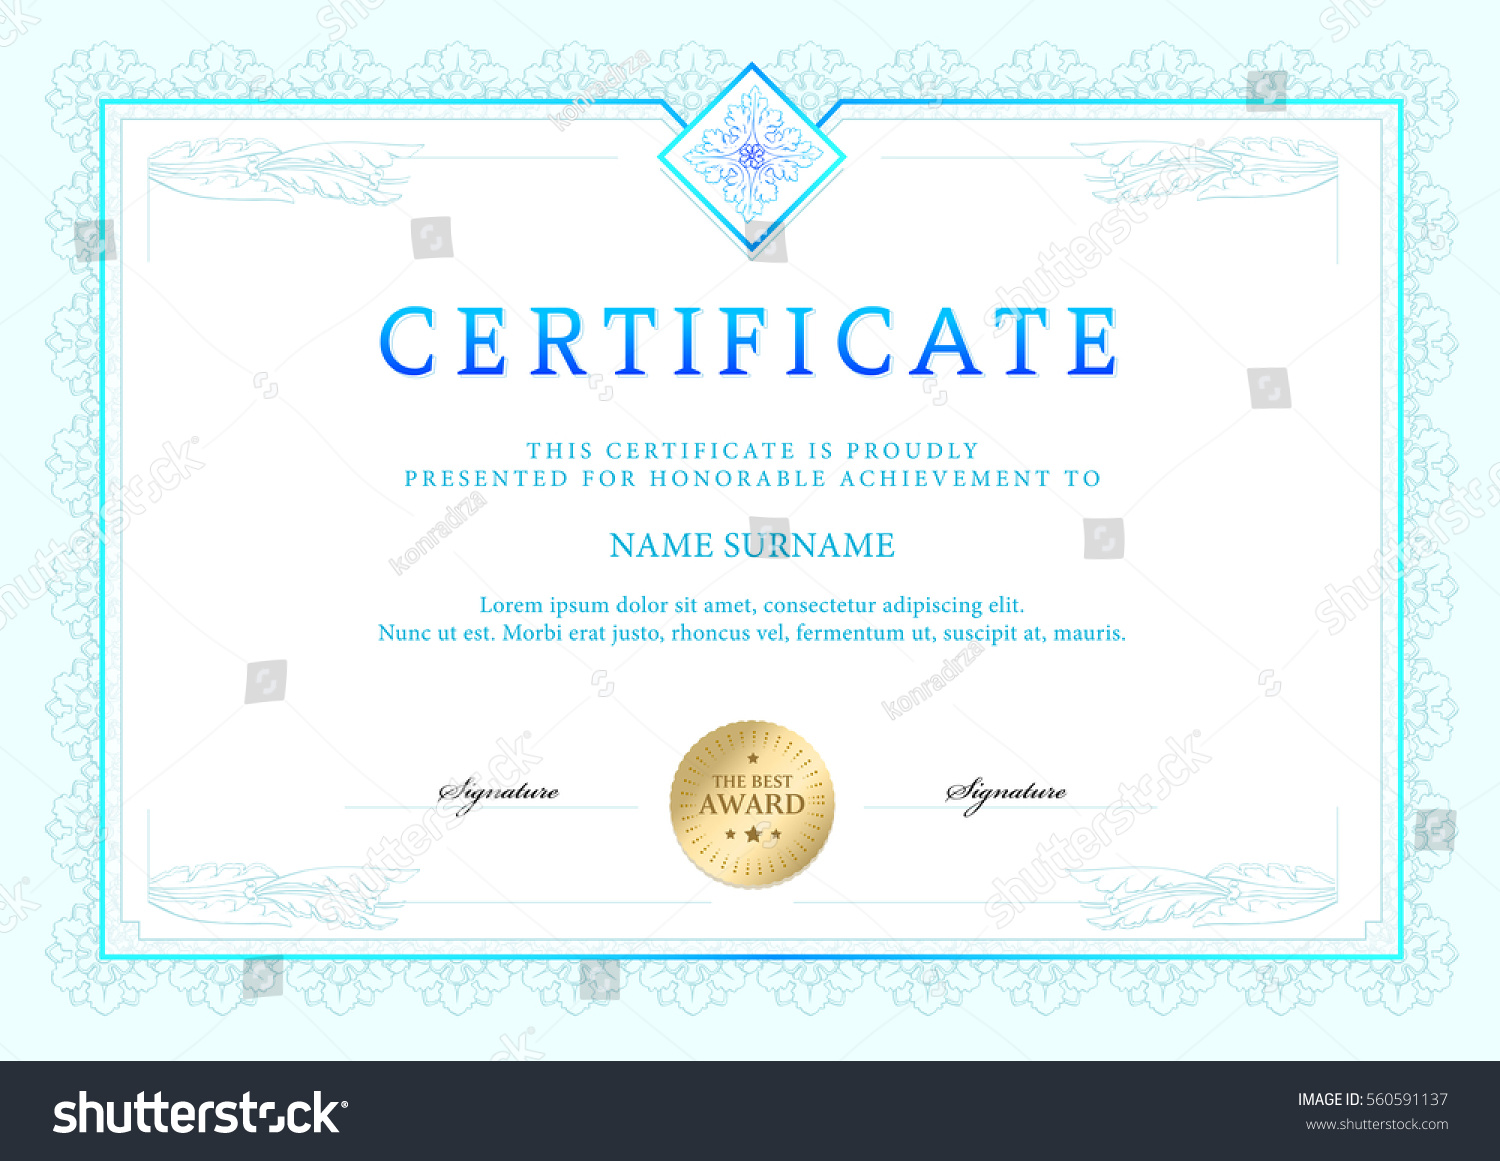 Ase certificate template choice image templates example free certificate template software sample resume of sales free reiki certificate templates gallery templates example free stock yadclub Choice Image